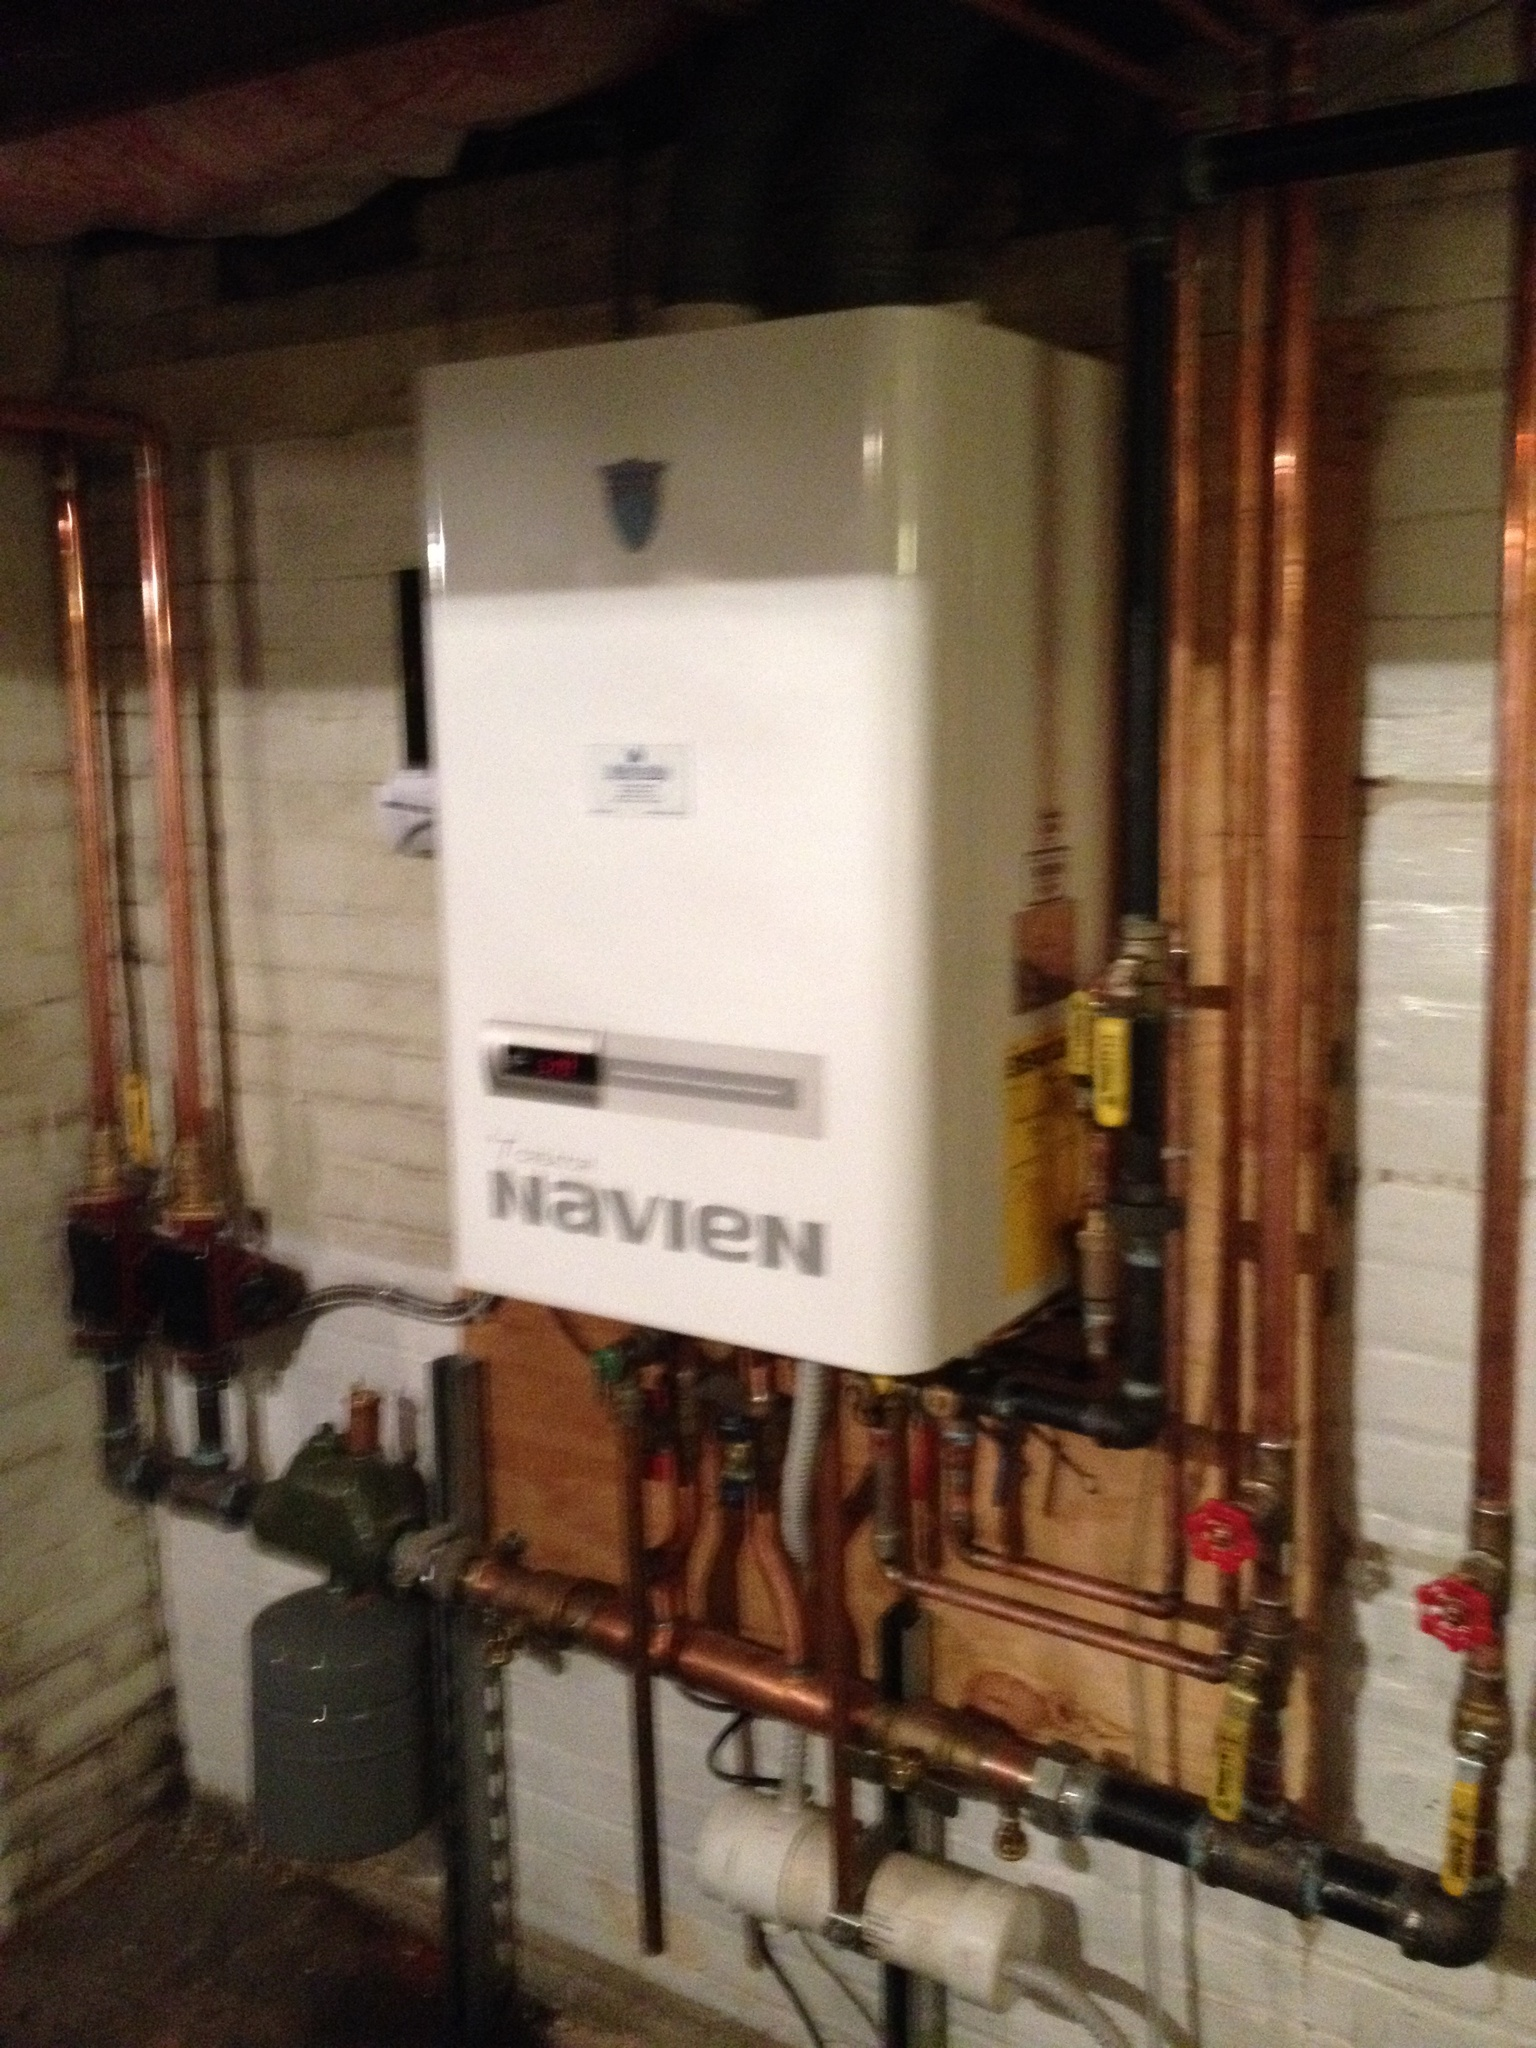 The old Navien CH series